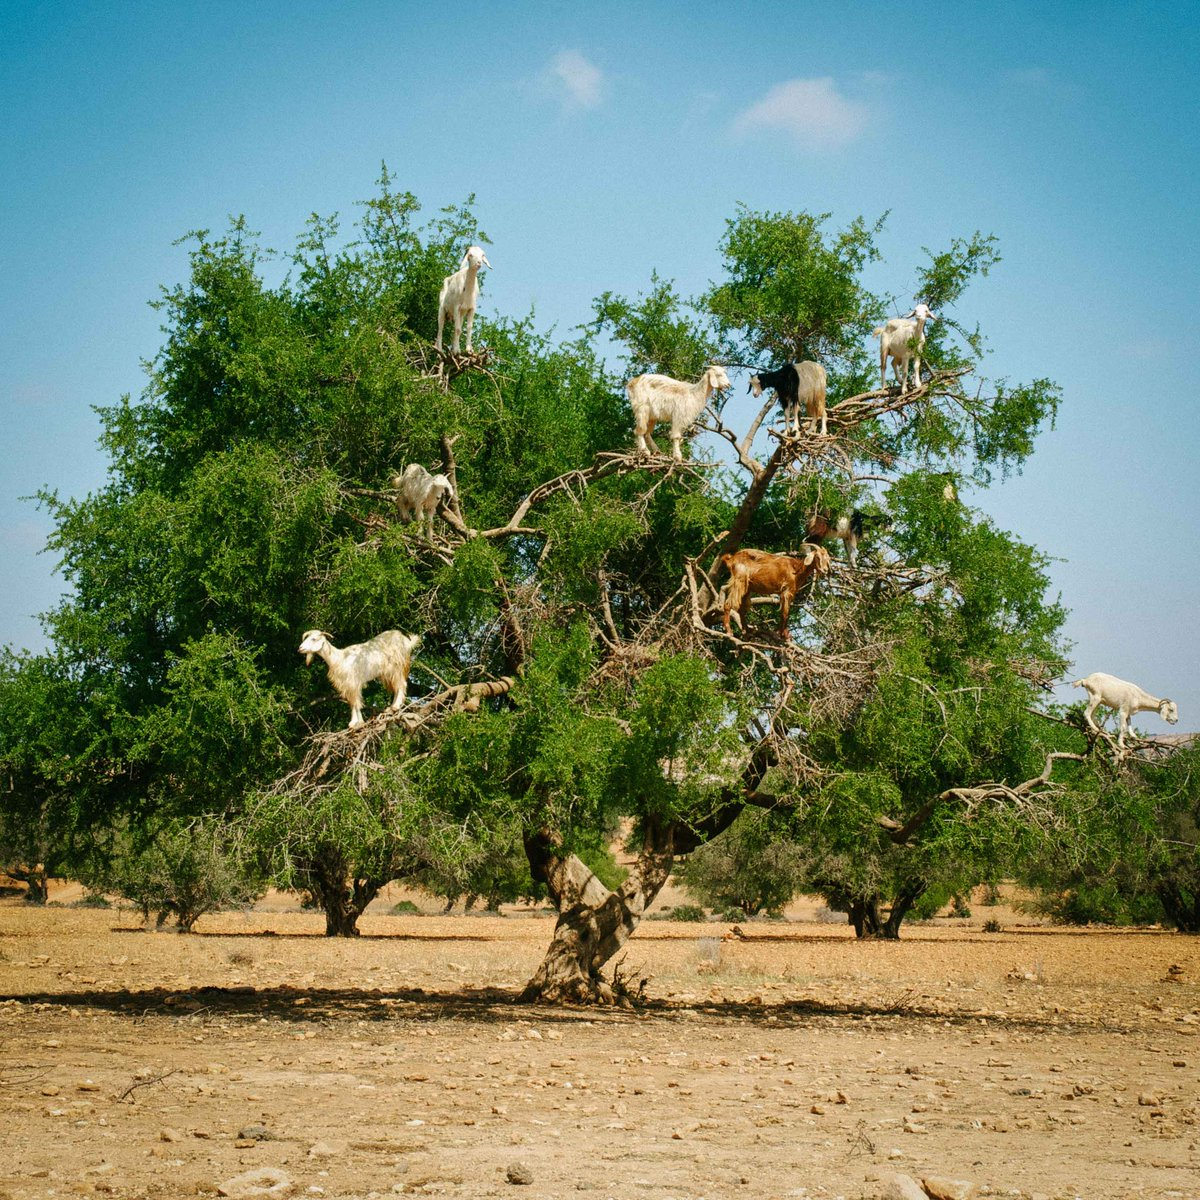 Meanwhile in Morocco. #goatsintrees http://t.co/B4YdQiXp2R